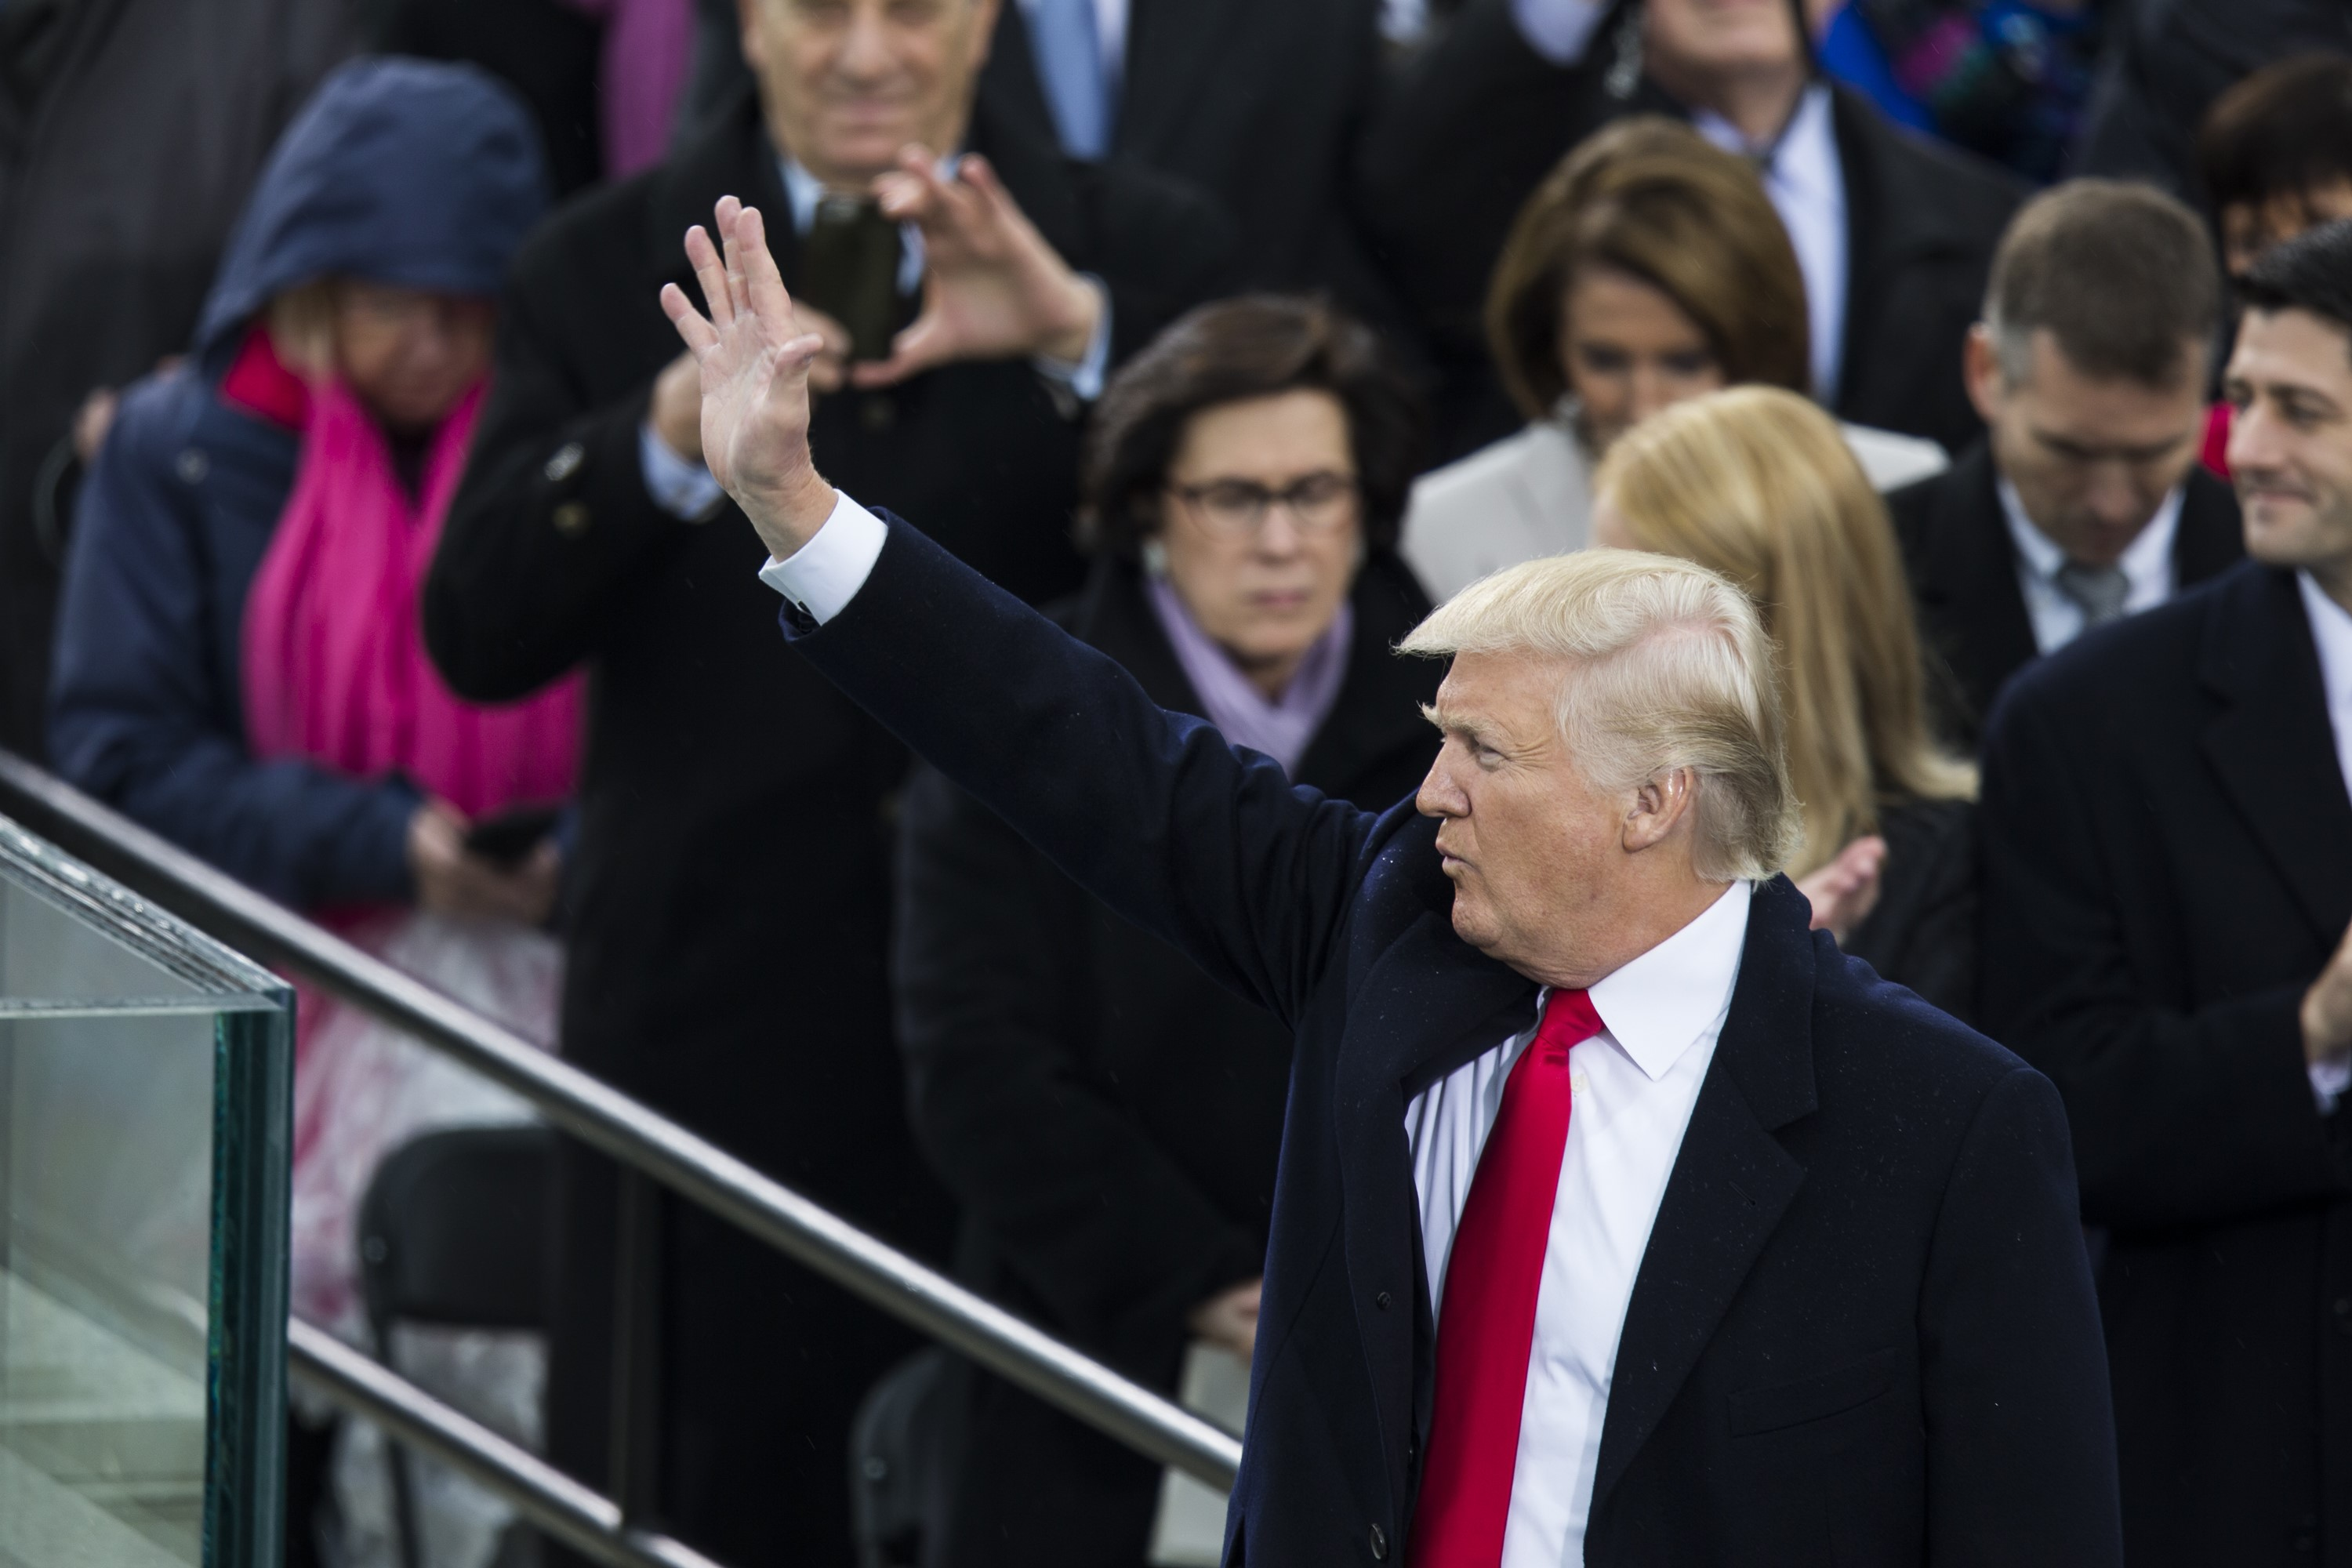 WASHINGTON, USA - JANUARY 20: President Donald Trump waves to the crowds during the 58th U.S. Presidential Inauguration after he was sworn in as the 45th President of the United States of America in Washington, USA on January 20, 2017.